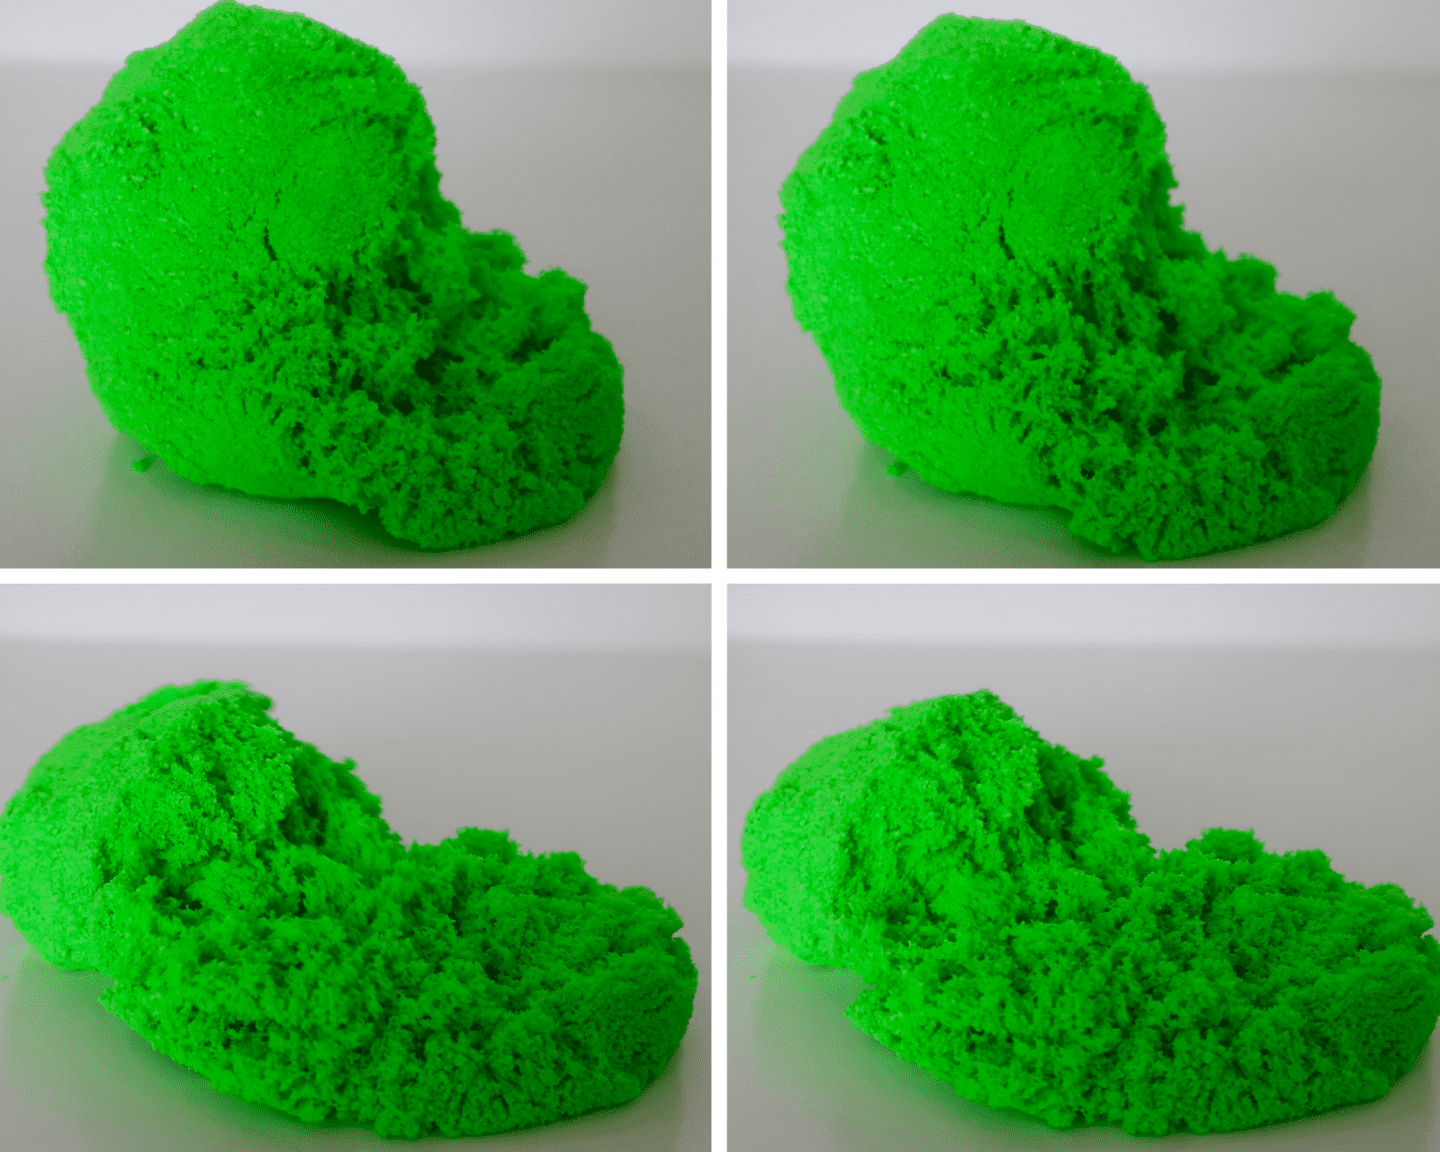 A set of 4 pictures of green sensory foam as it unfurls itself from a ball and appears to melt